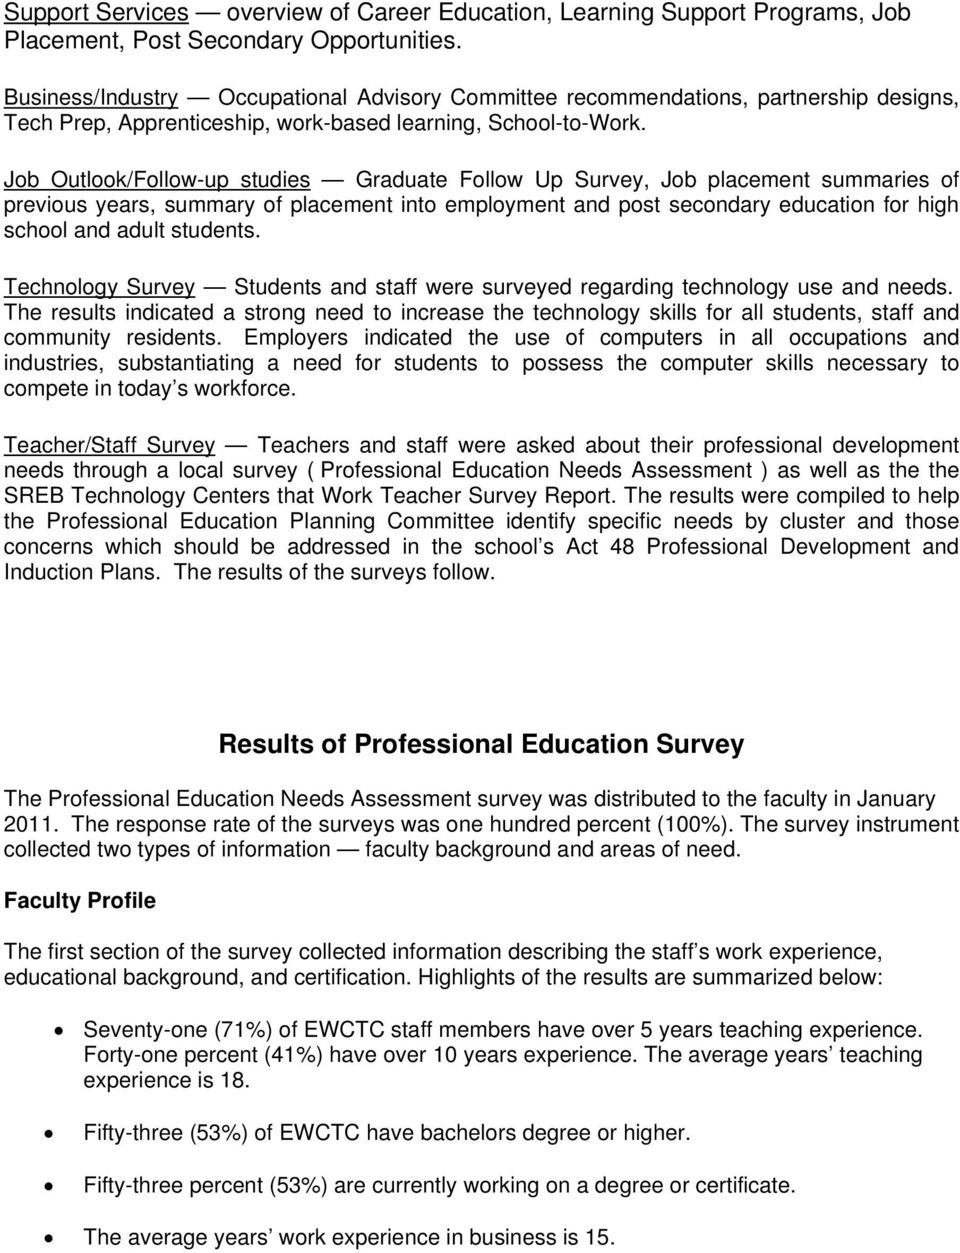 Job Outlook/Followup studies Graduate Follow Up Survey, Job placement summaries of previous years, summary of placement into employment and post secondary education for high school and adult students.